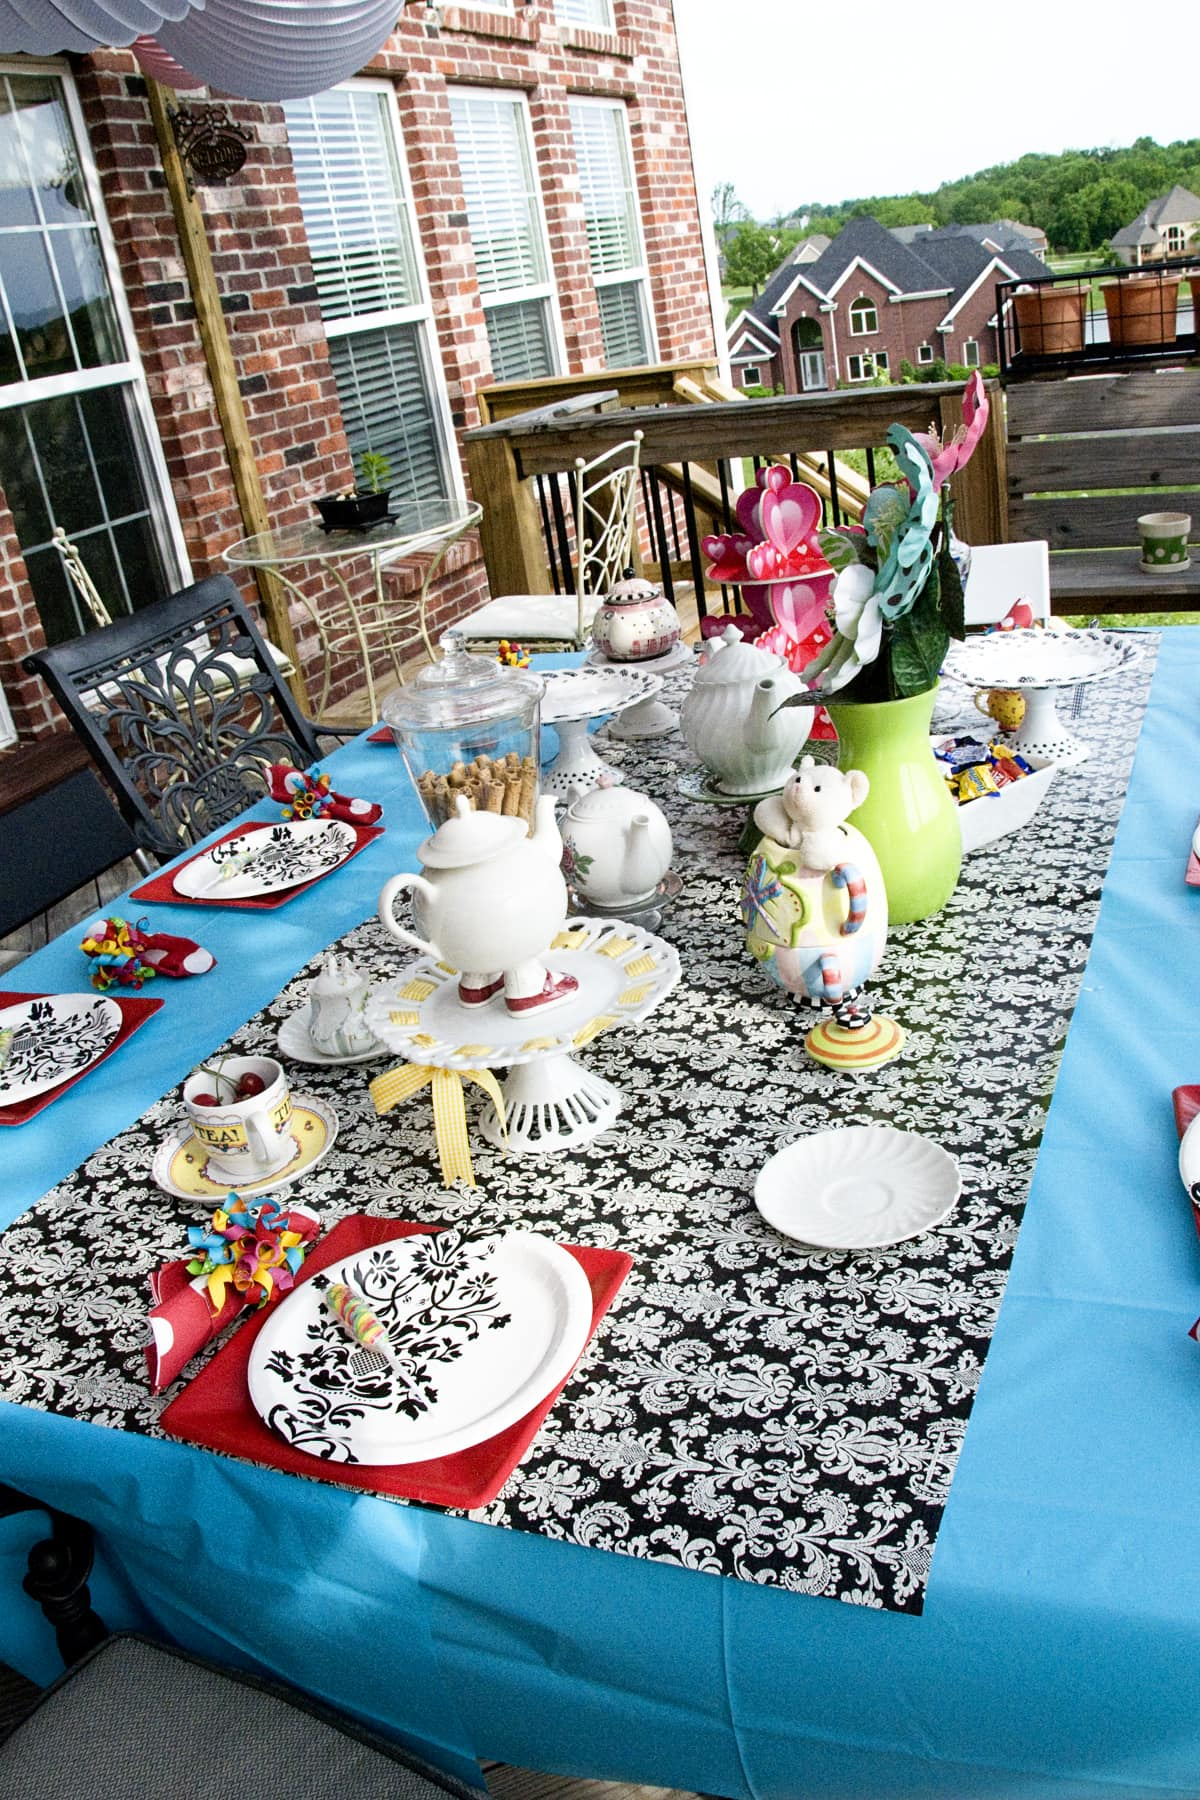 Inexpensive Tablecloth Idea The Polkadot Chair